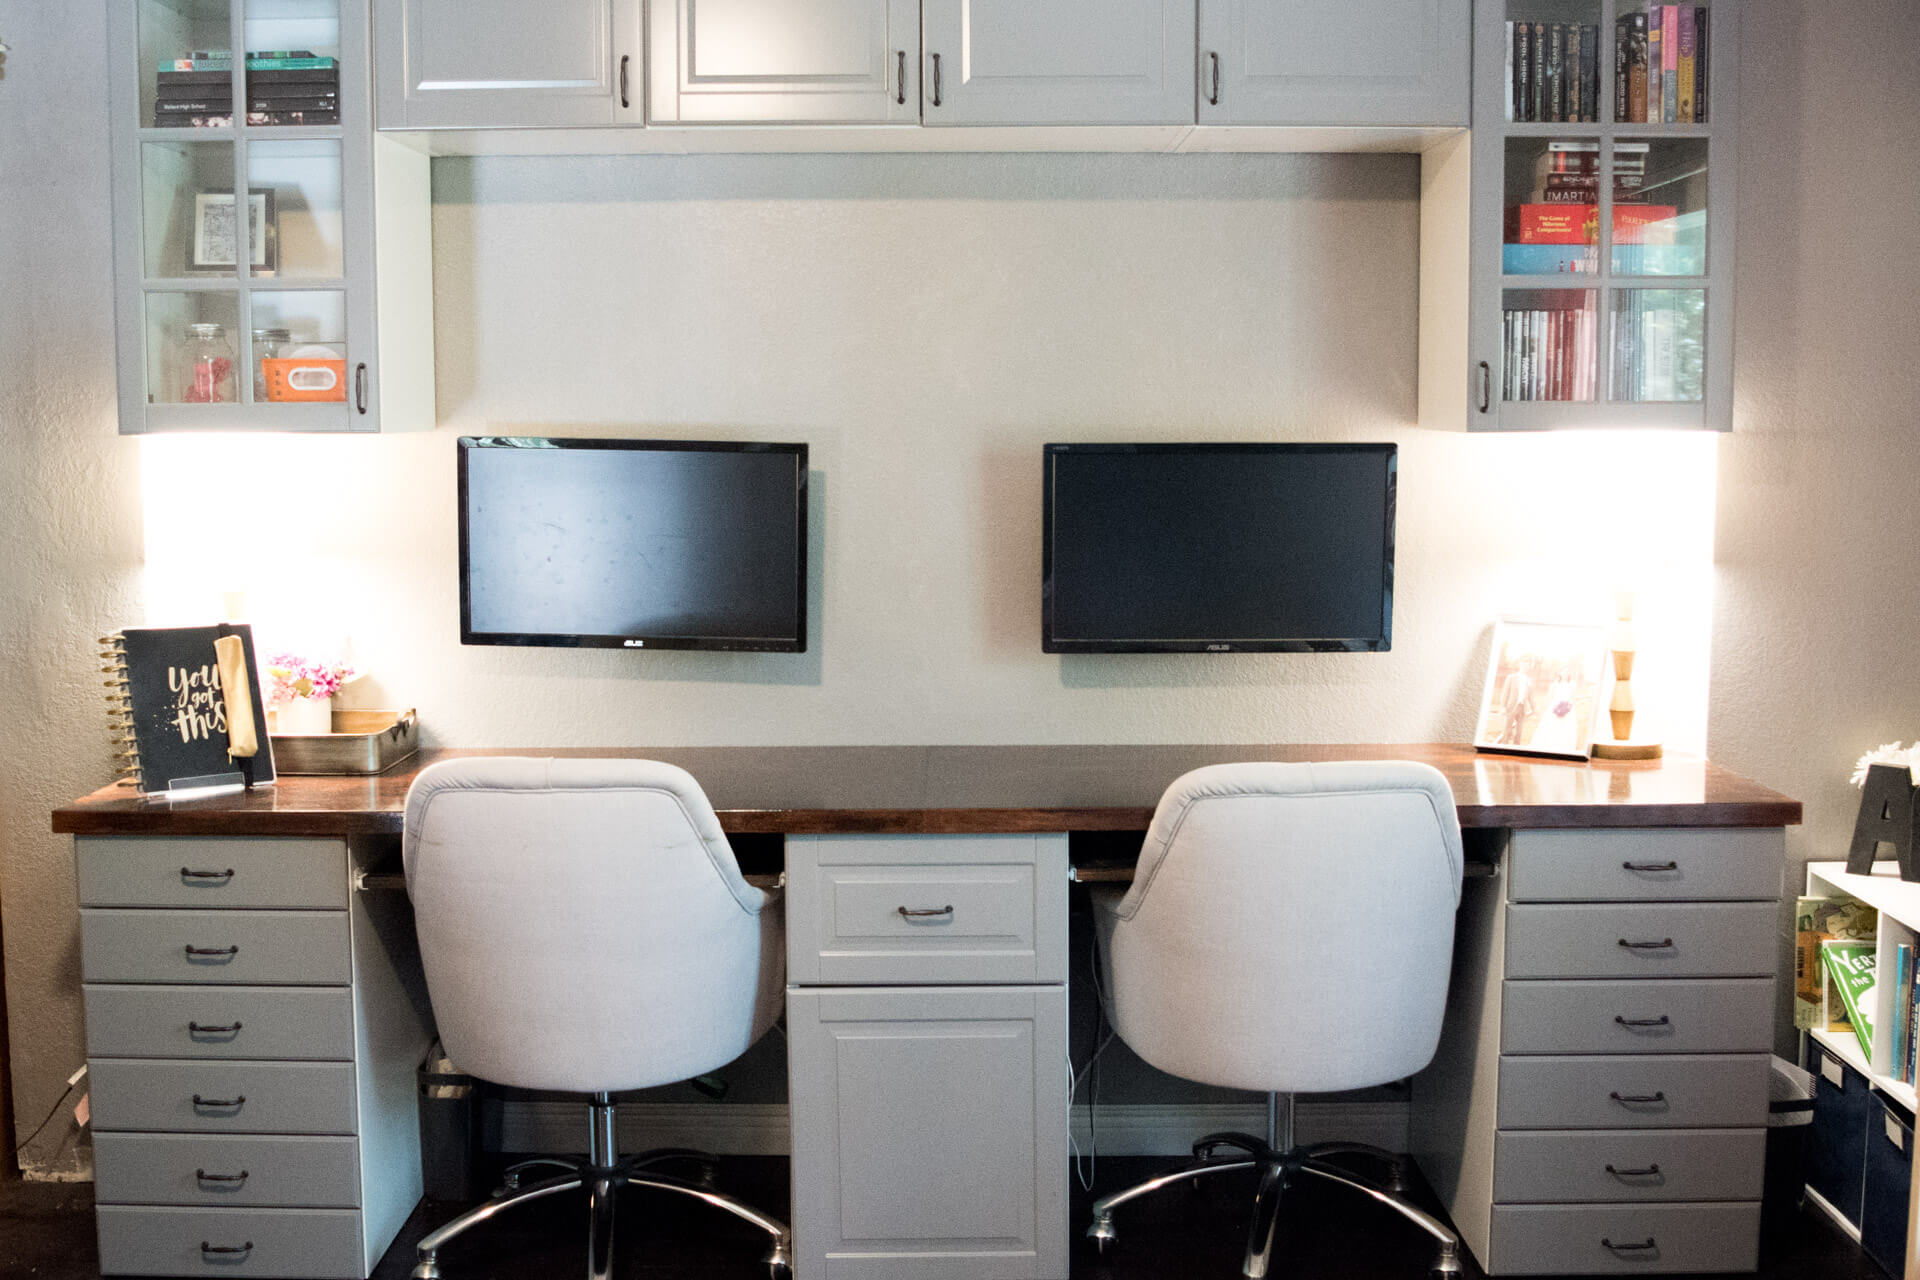 upgrading our home office with ikea kitchen cabinets chapter two finishing touches